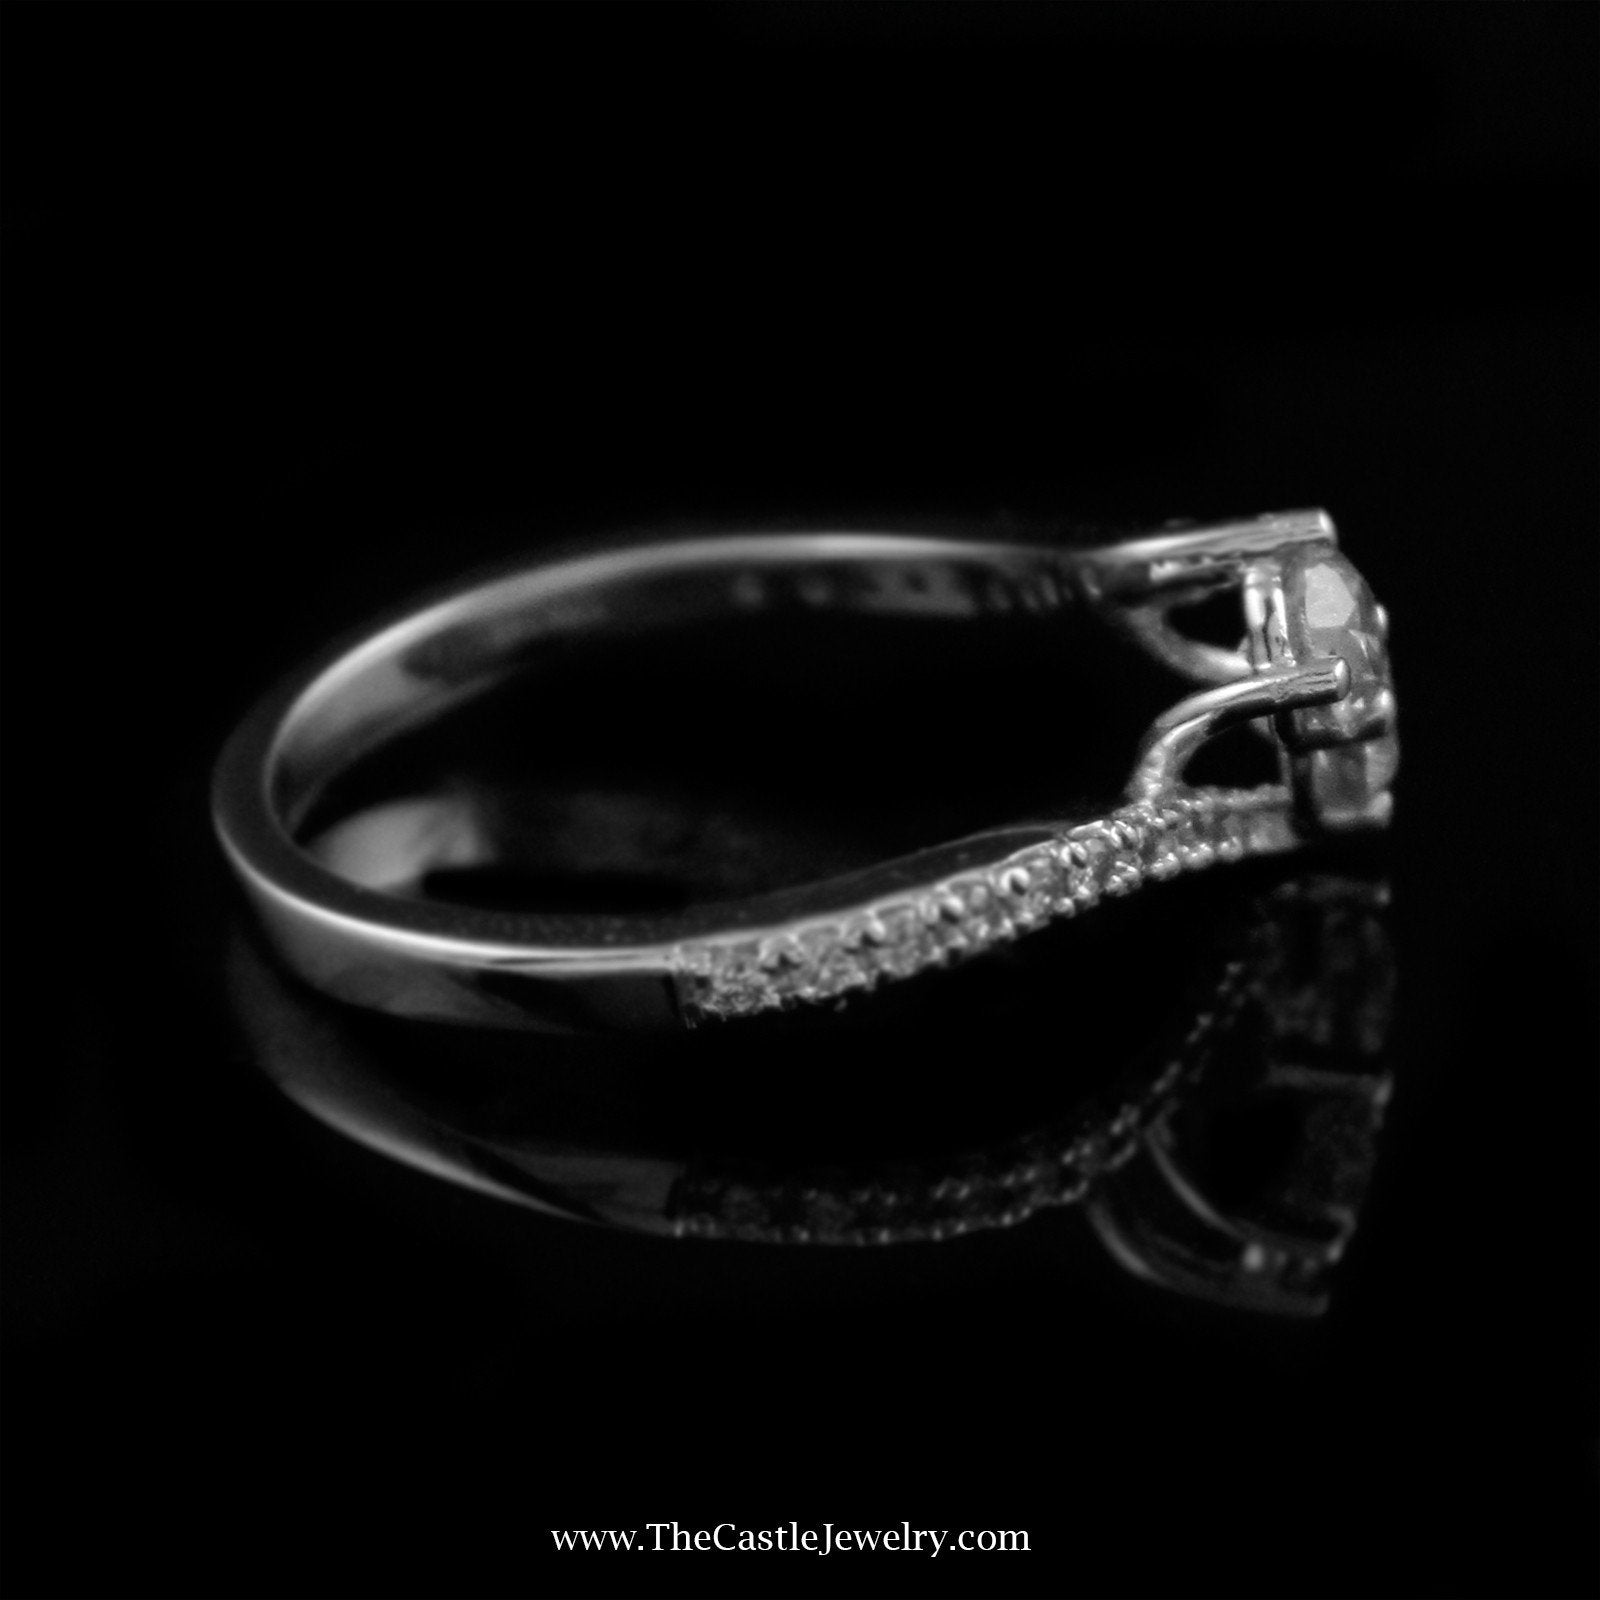 Beautiful 1cttw My True Love & My Best Friend Diamond Ring Crafted in 14K White Gold-2